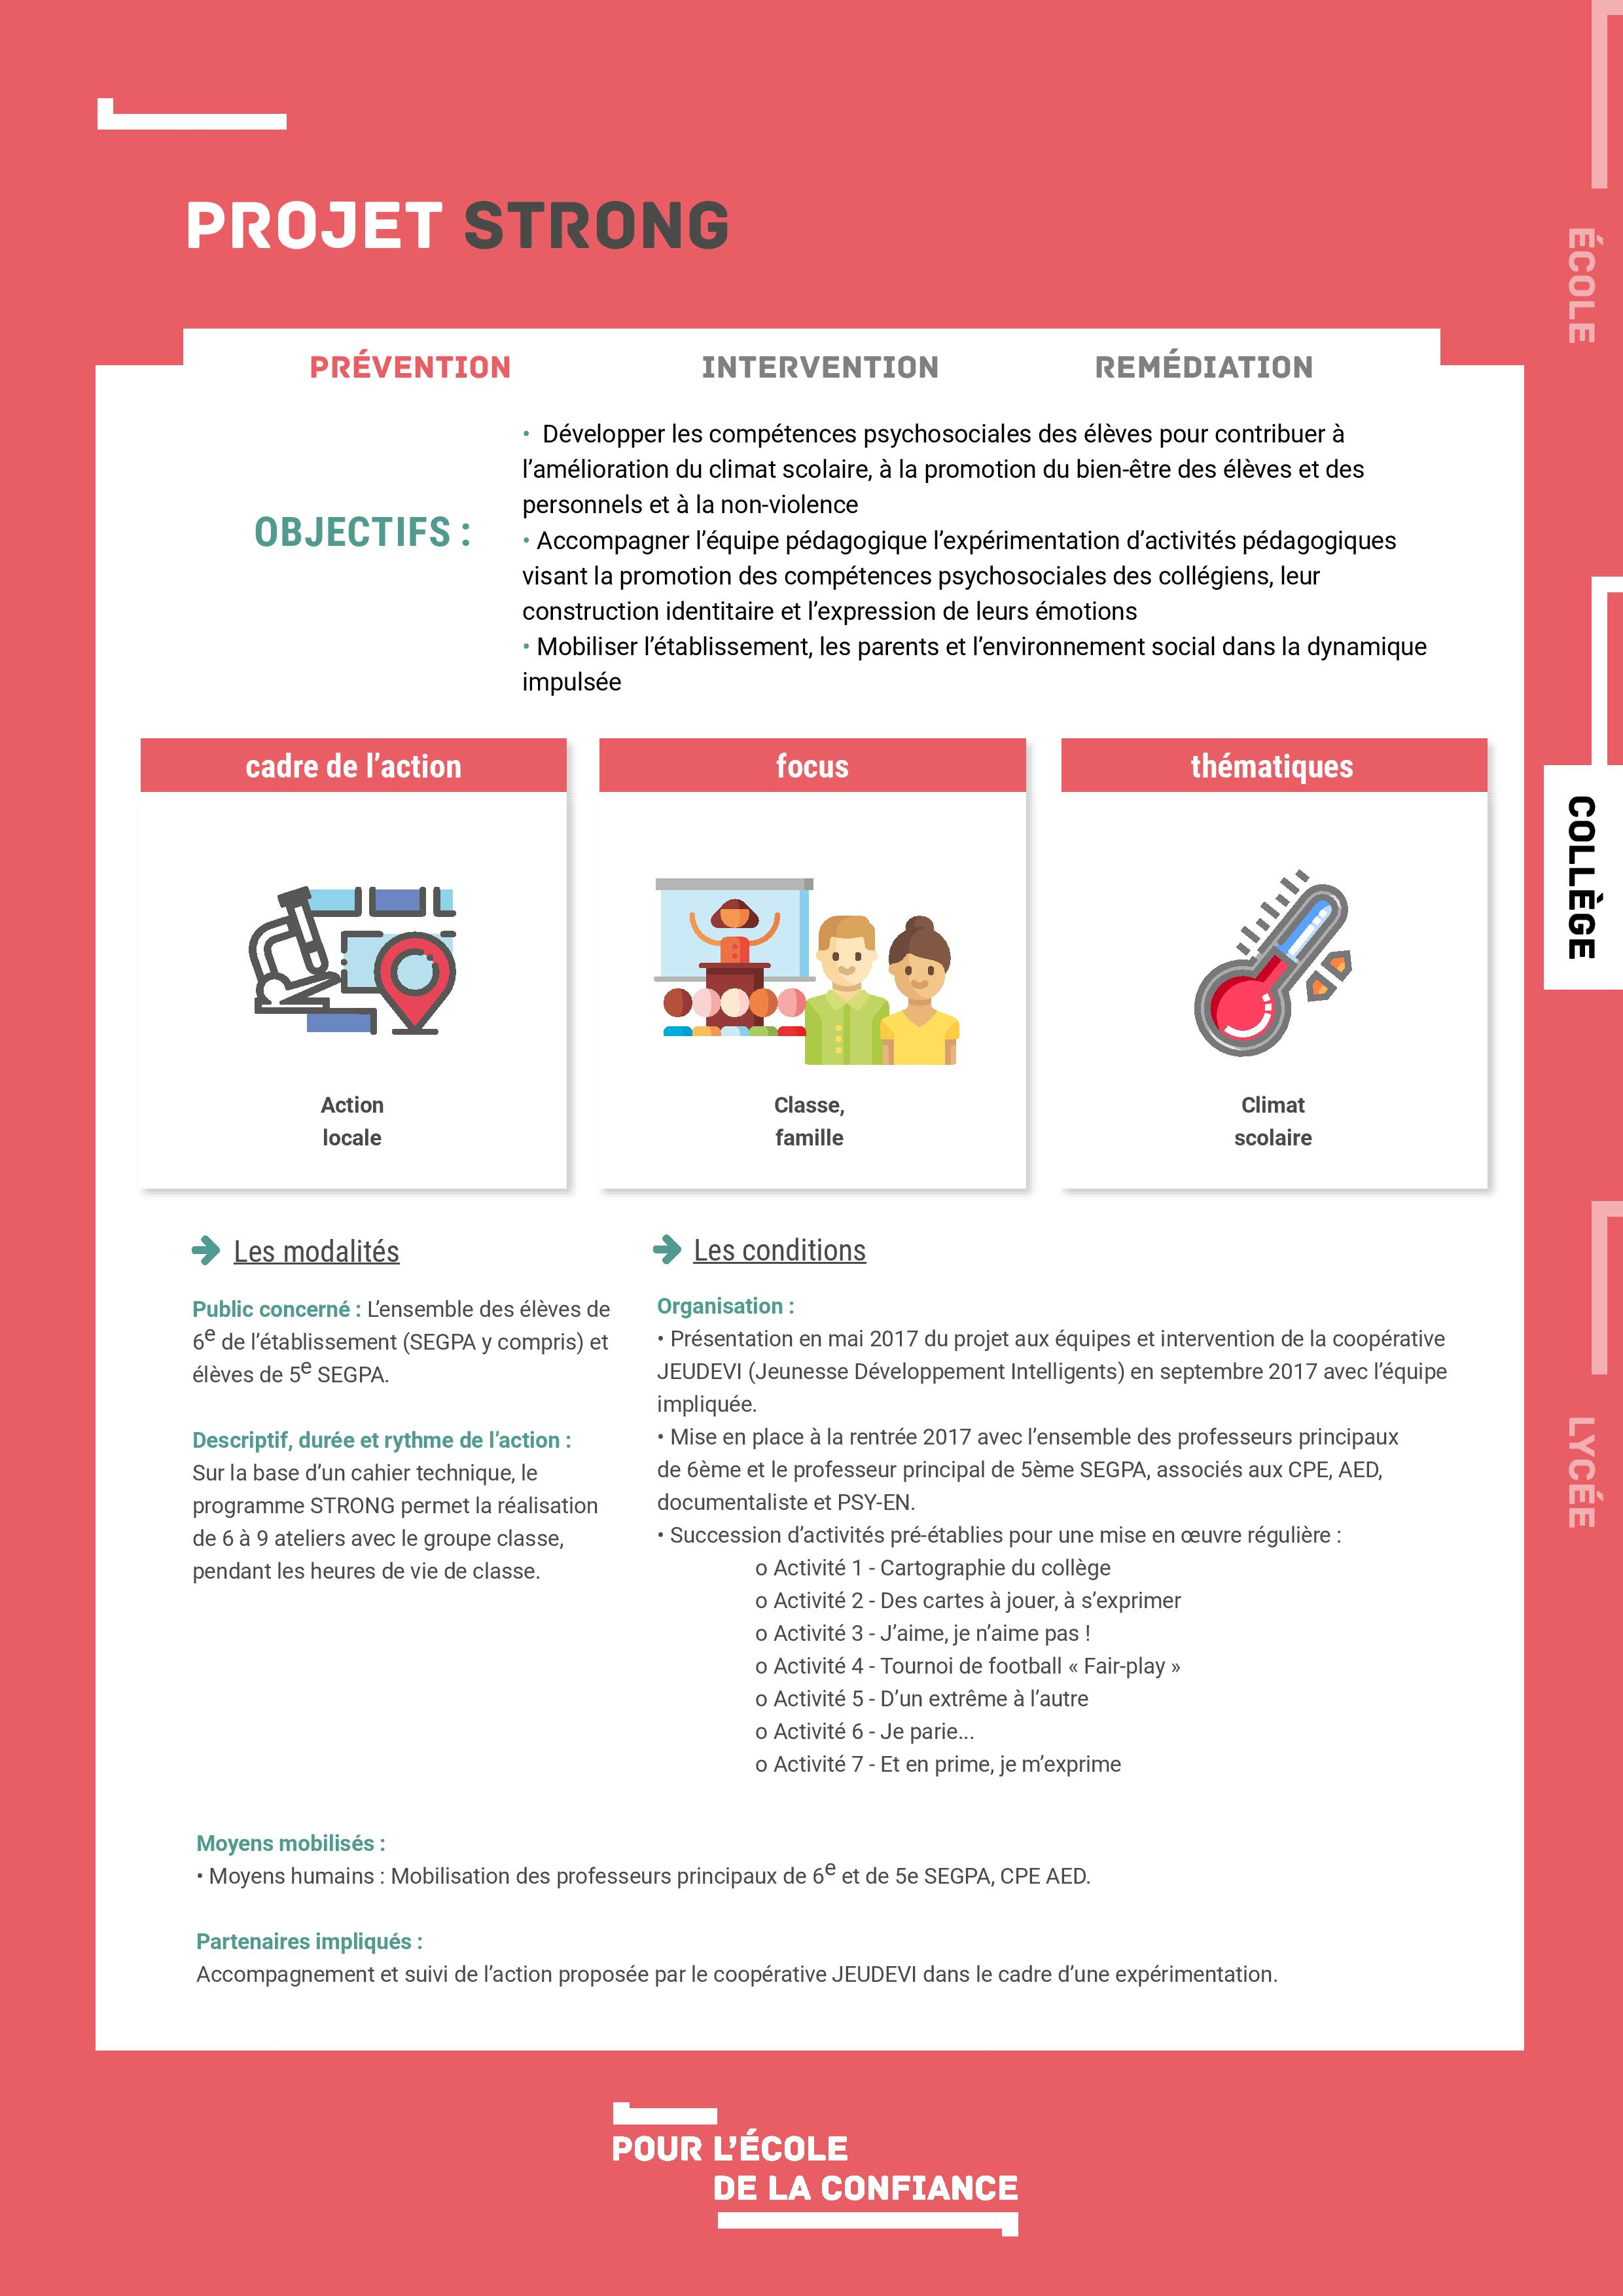 fiche-projet-strong-page-001.jpg